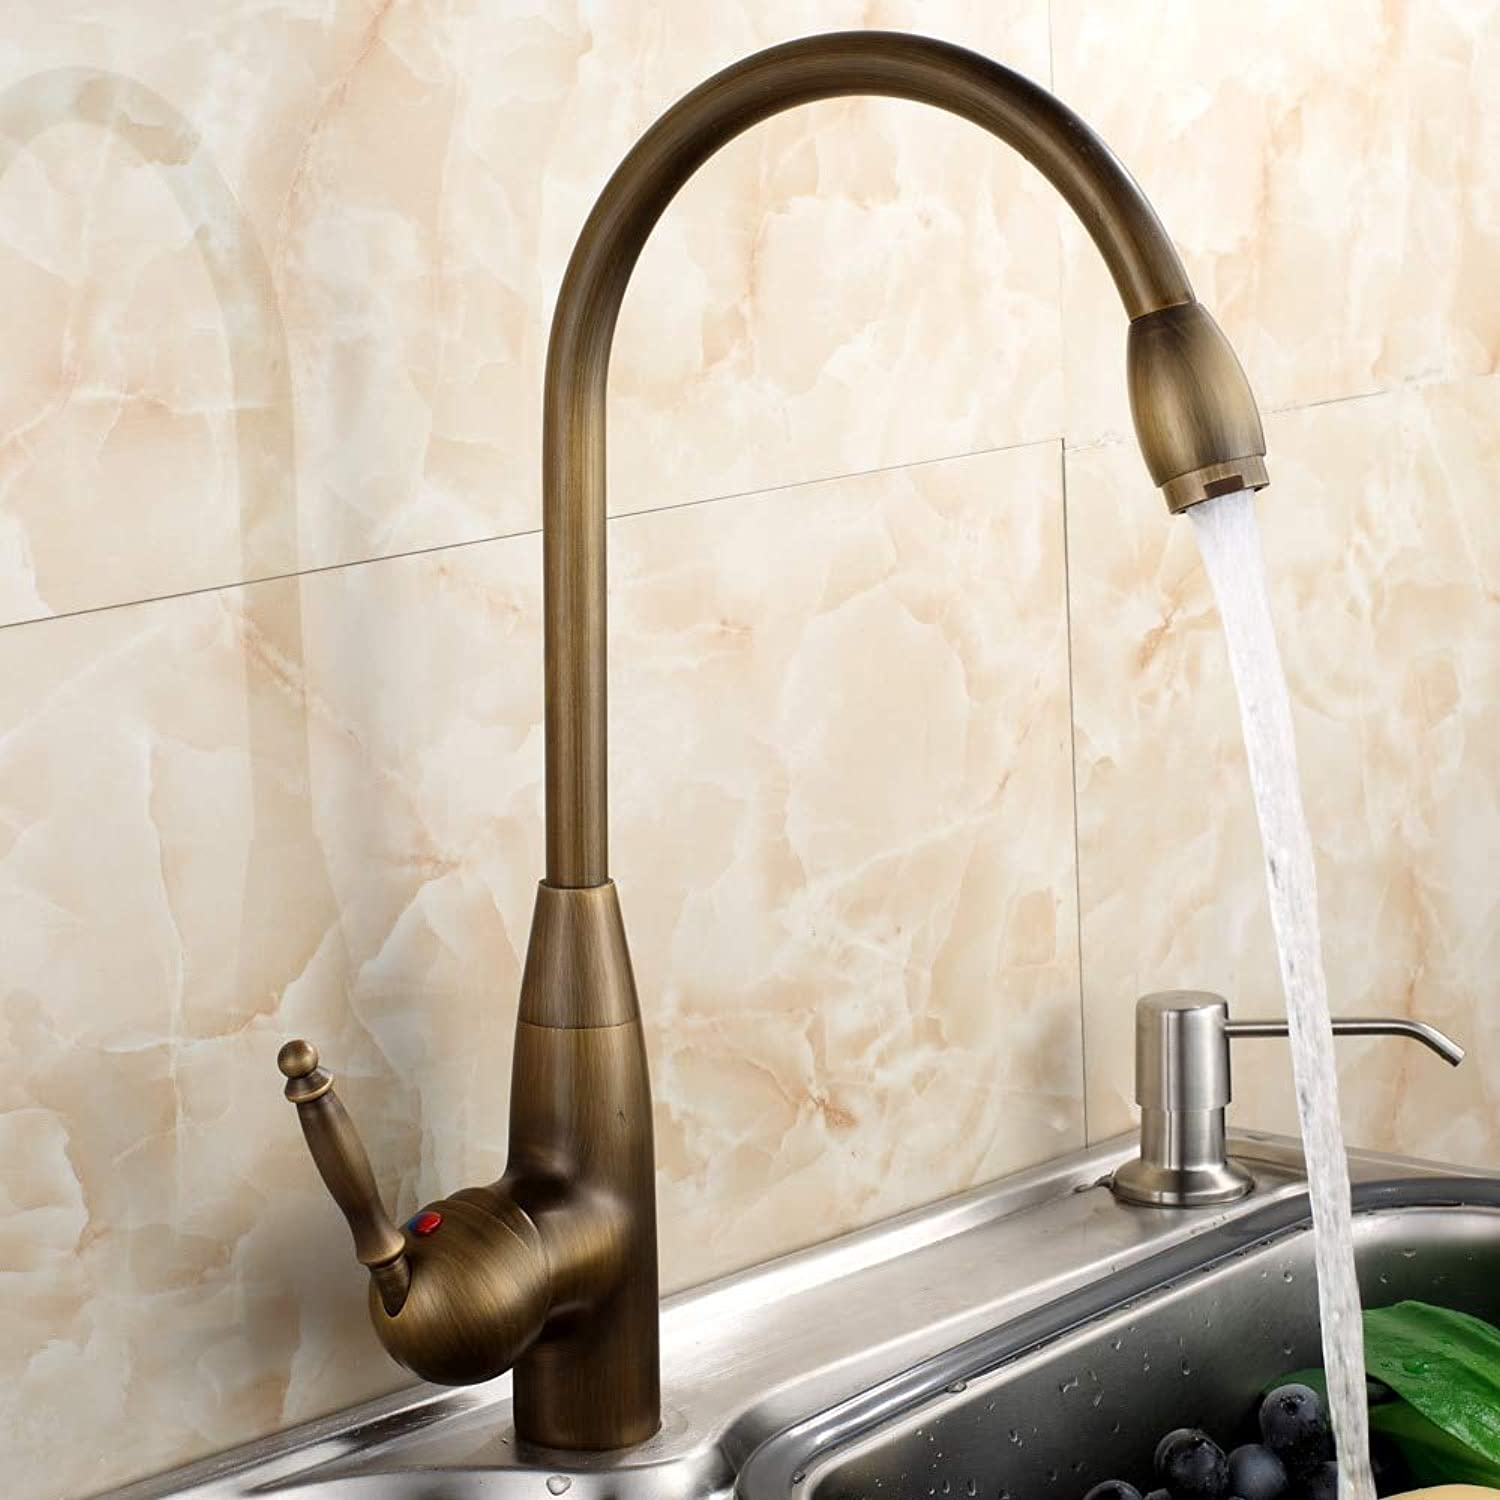 Decorry Kitchen Faucets Brass Basin Mixer Tap Antique Brushed 360 Swivel Faucet 506A